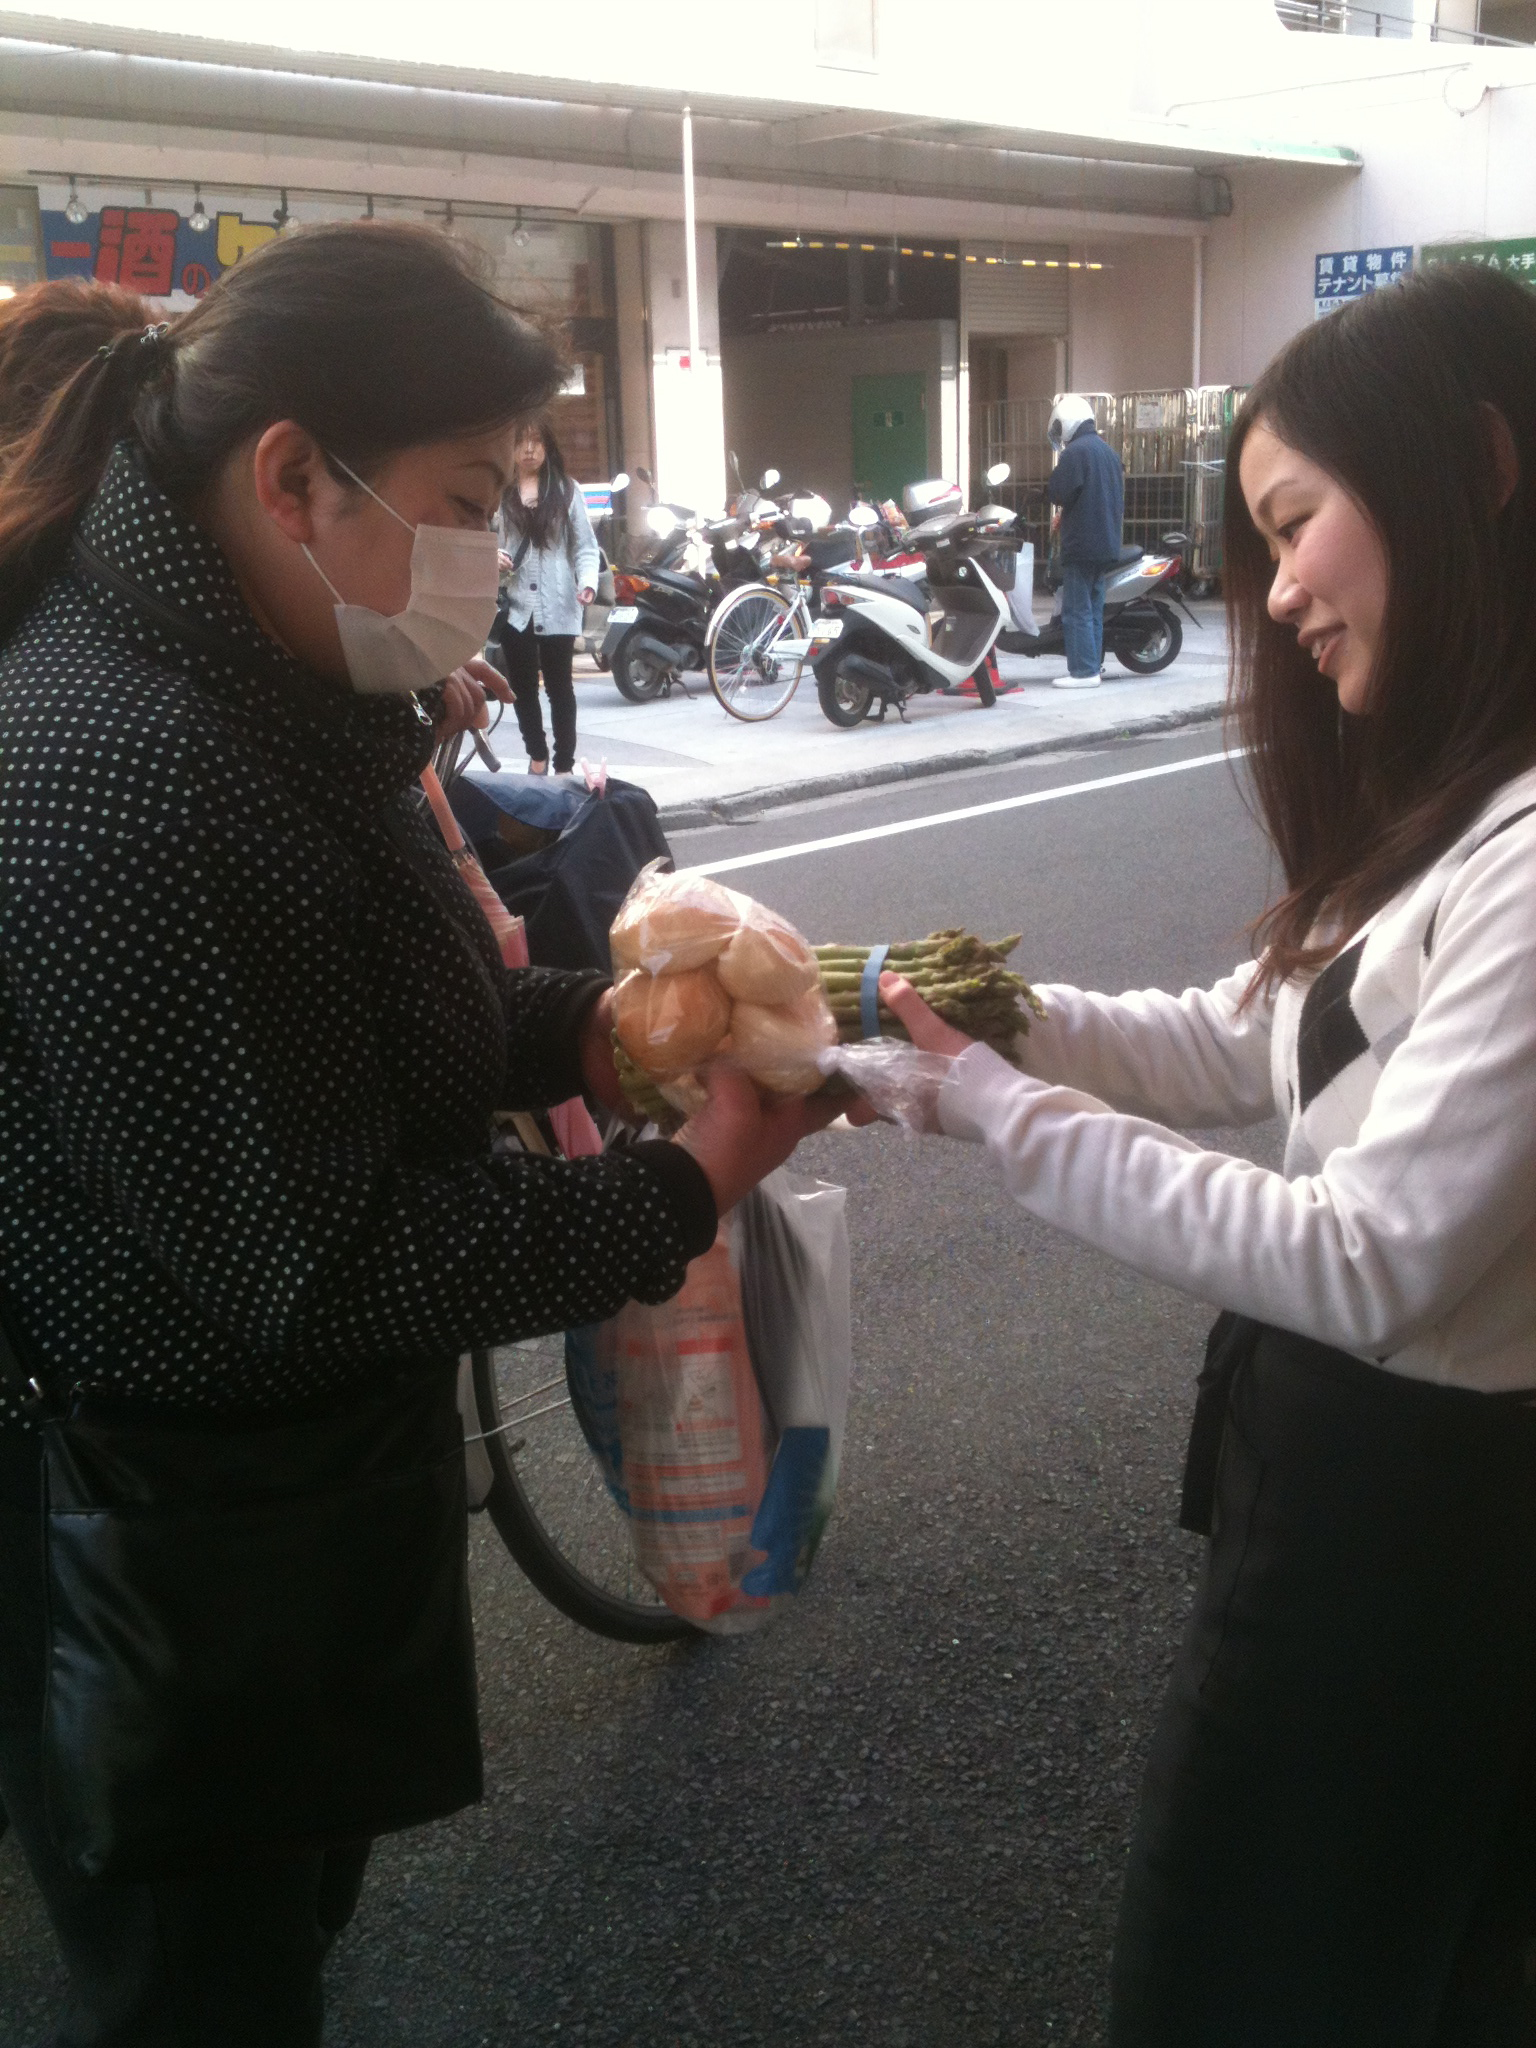 Kozmoz Japan Internship participant distributing food to the less fortunate in Kyoto